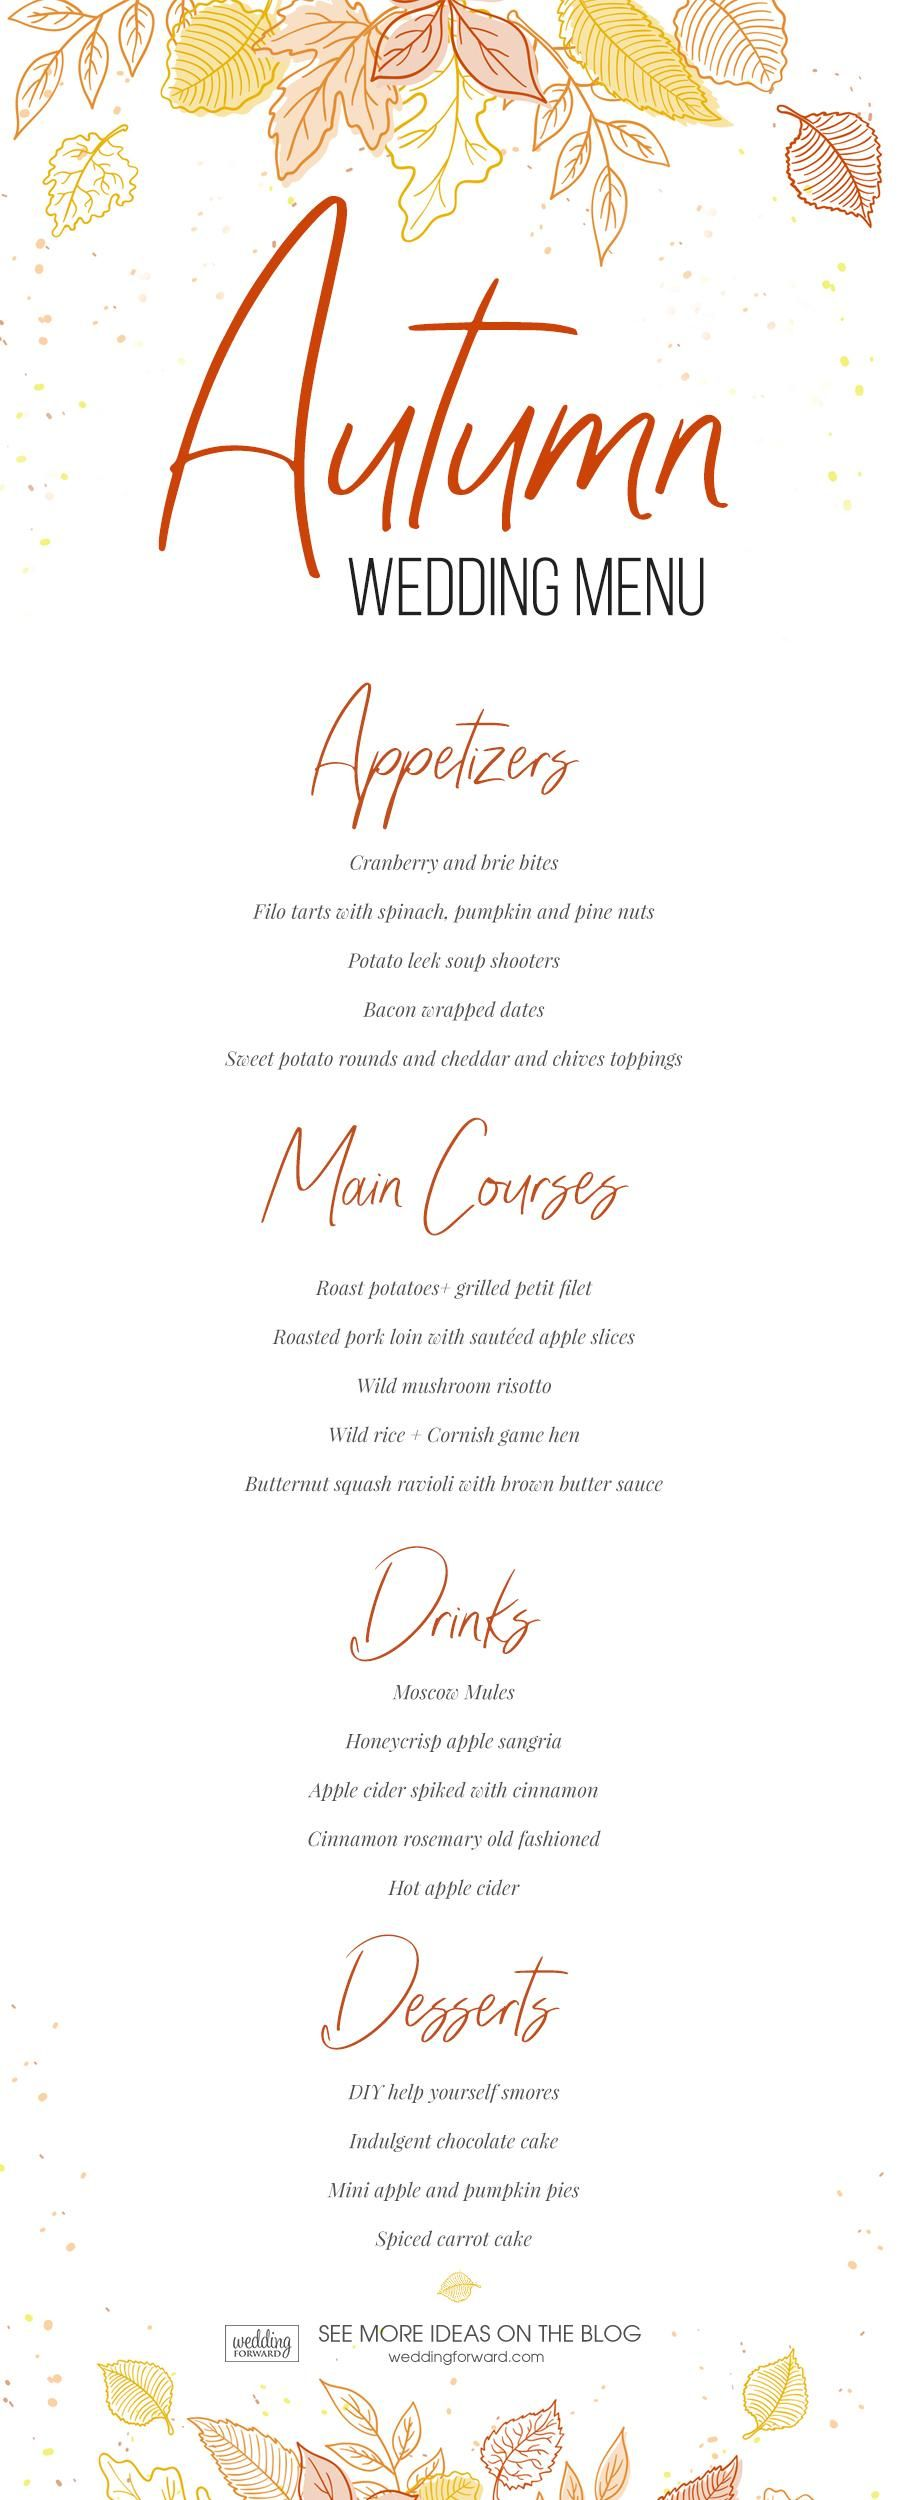 Top Wedding Menu Ideas In 2020 And Tips Wedding Forward Fall Wedding Menu Wedding Food Menu Wedding Menu